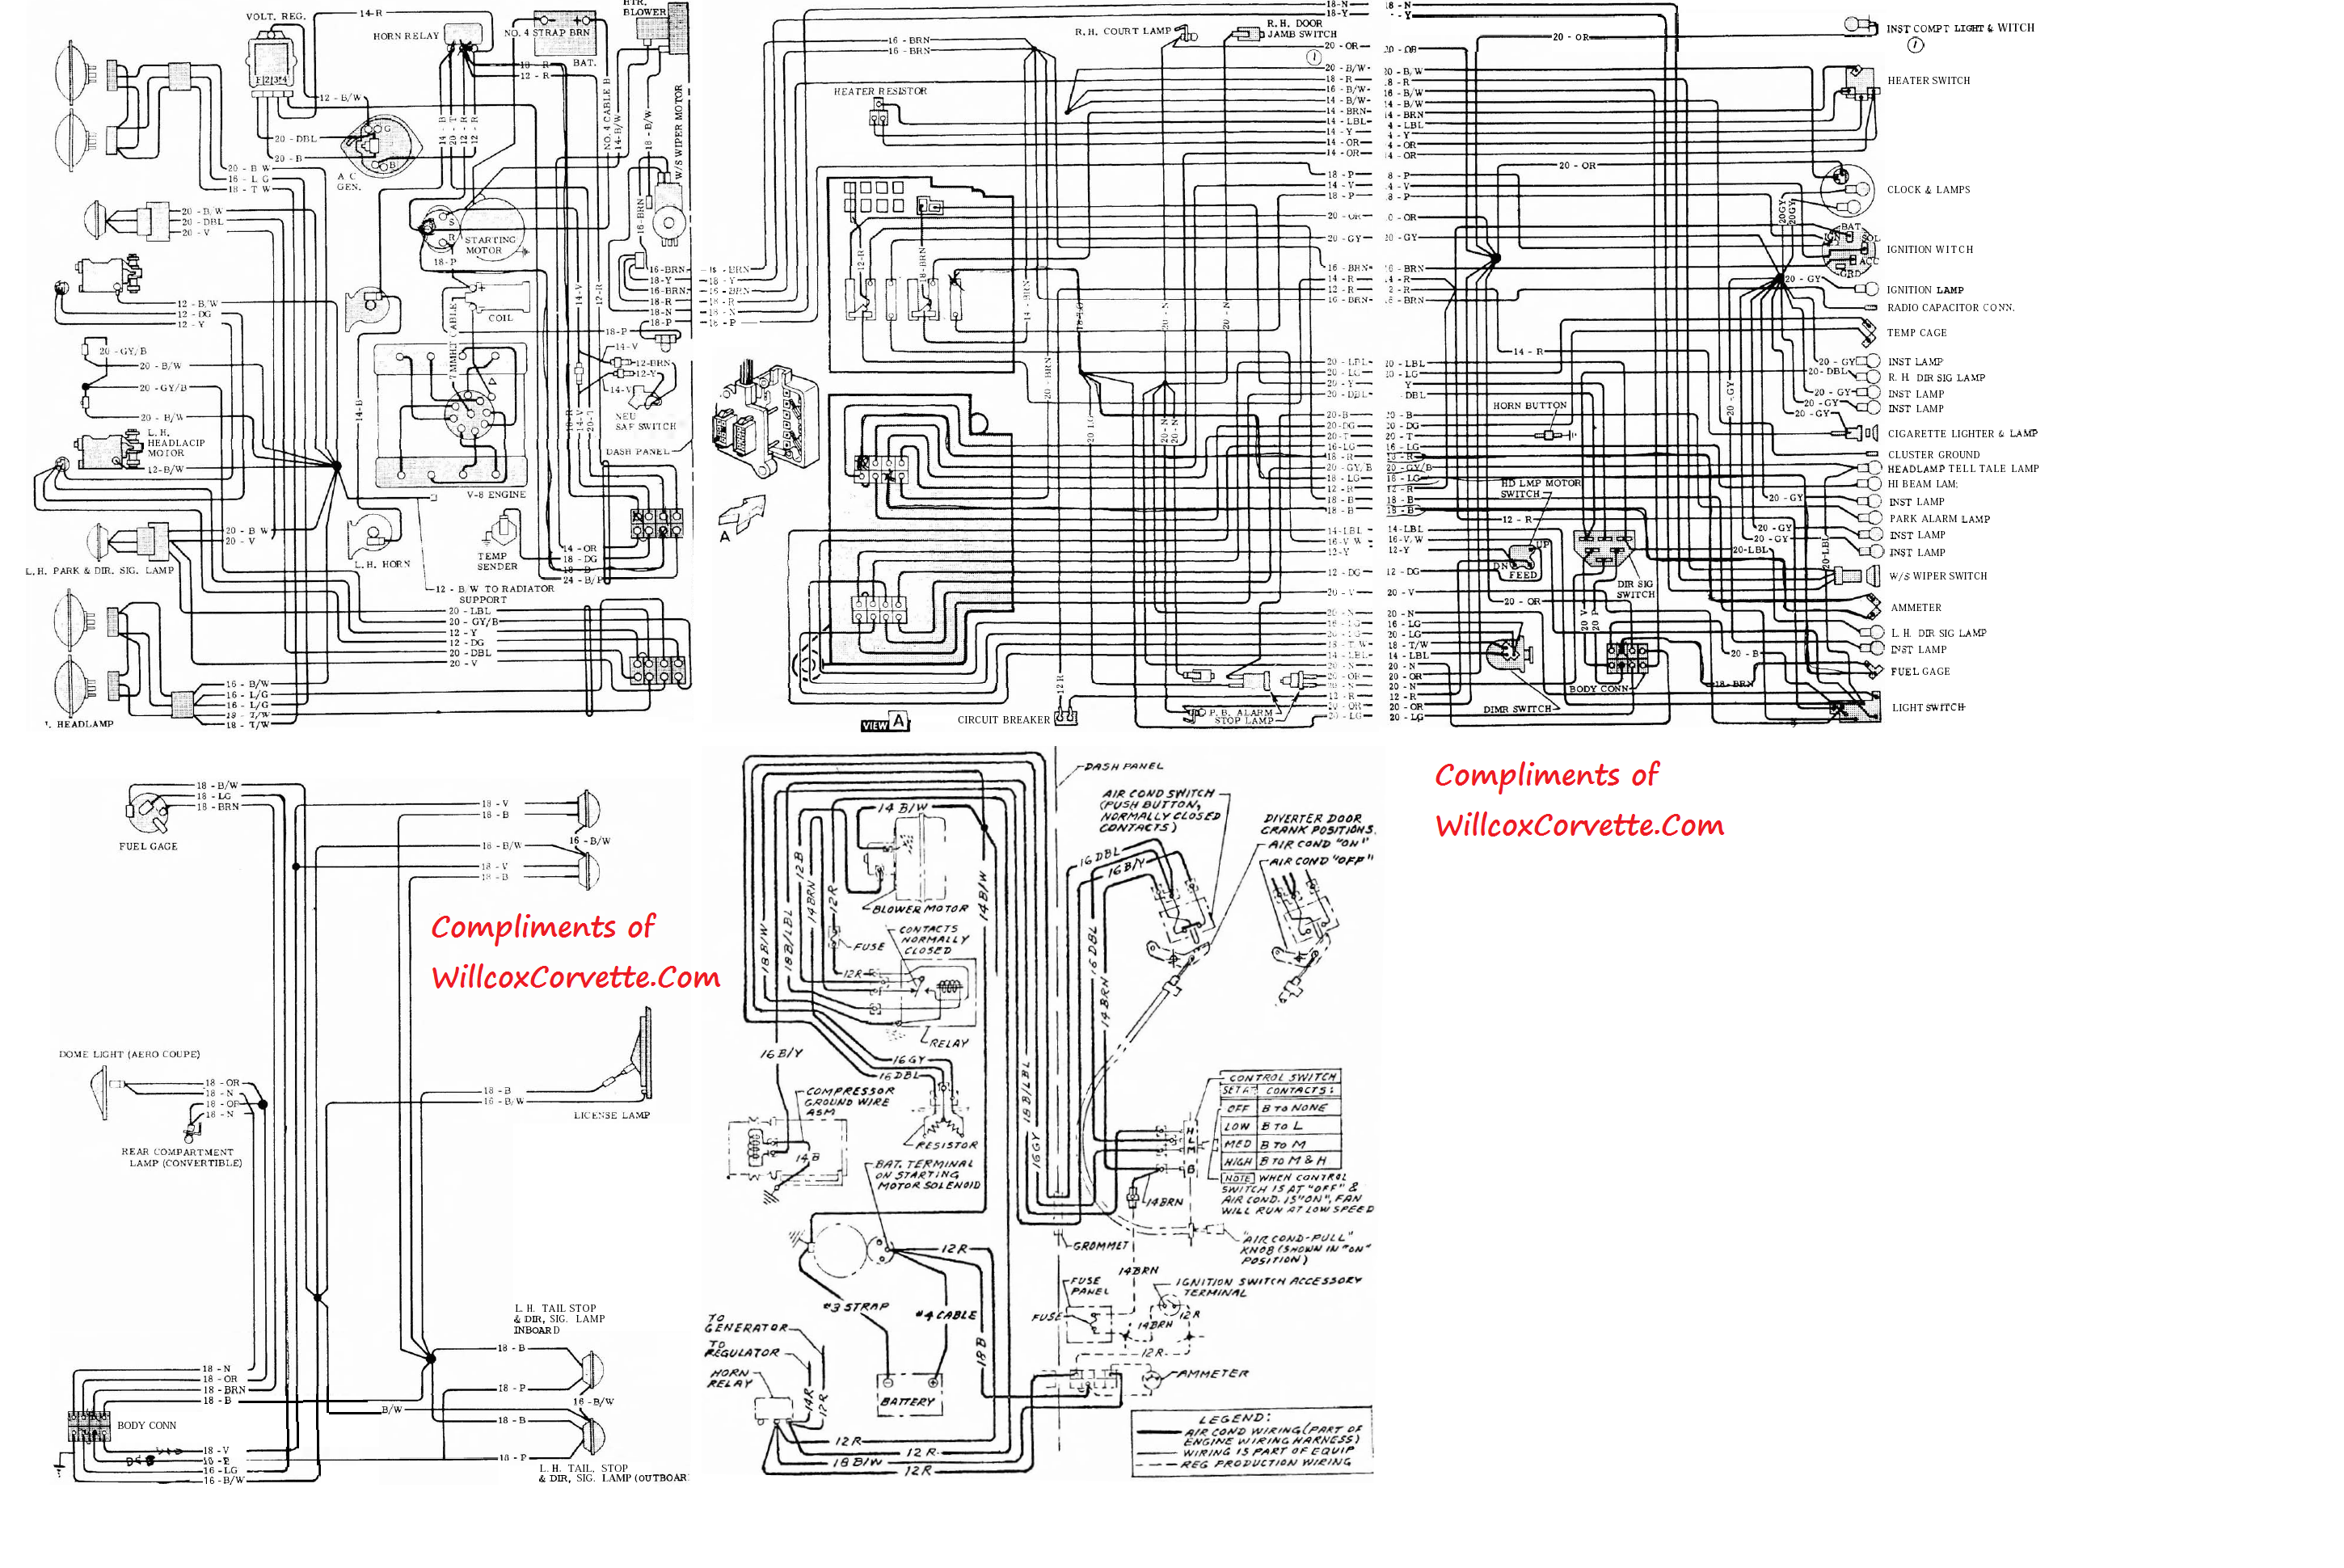 Photocell Wiring Diagram Uk from repairs.willcoxcorvette.com